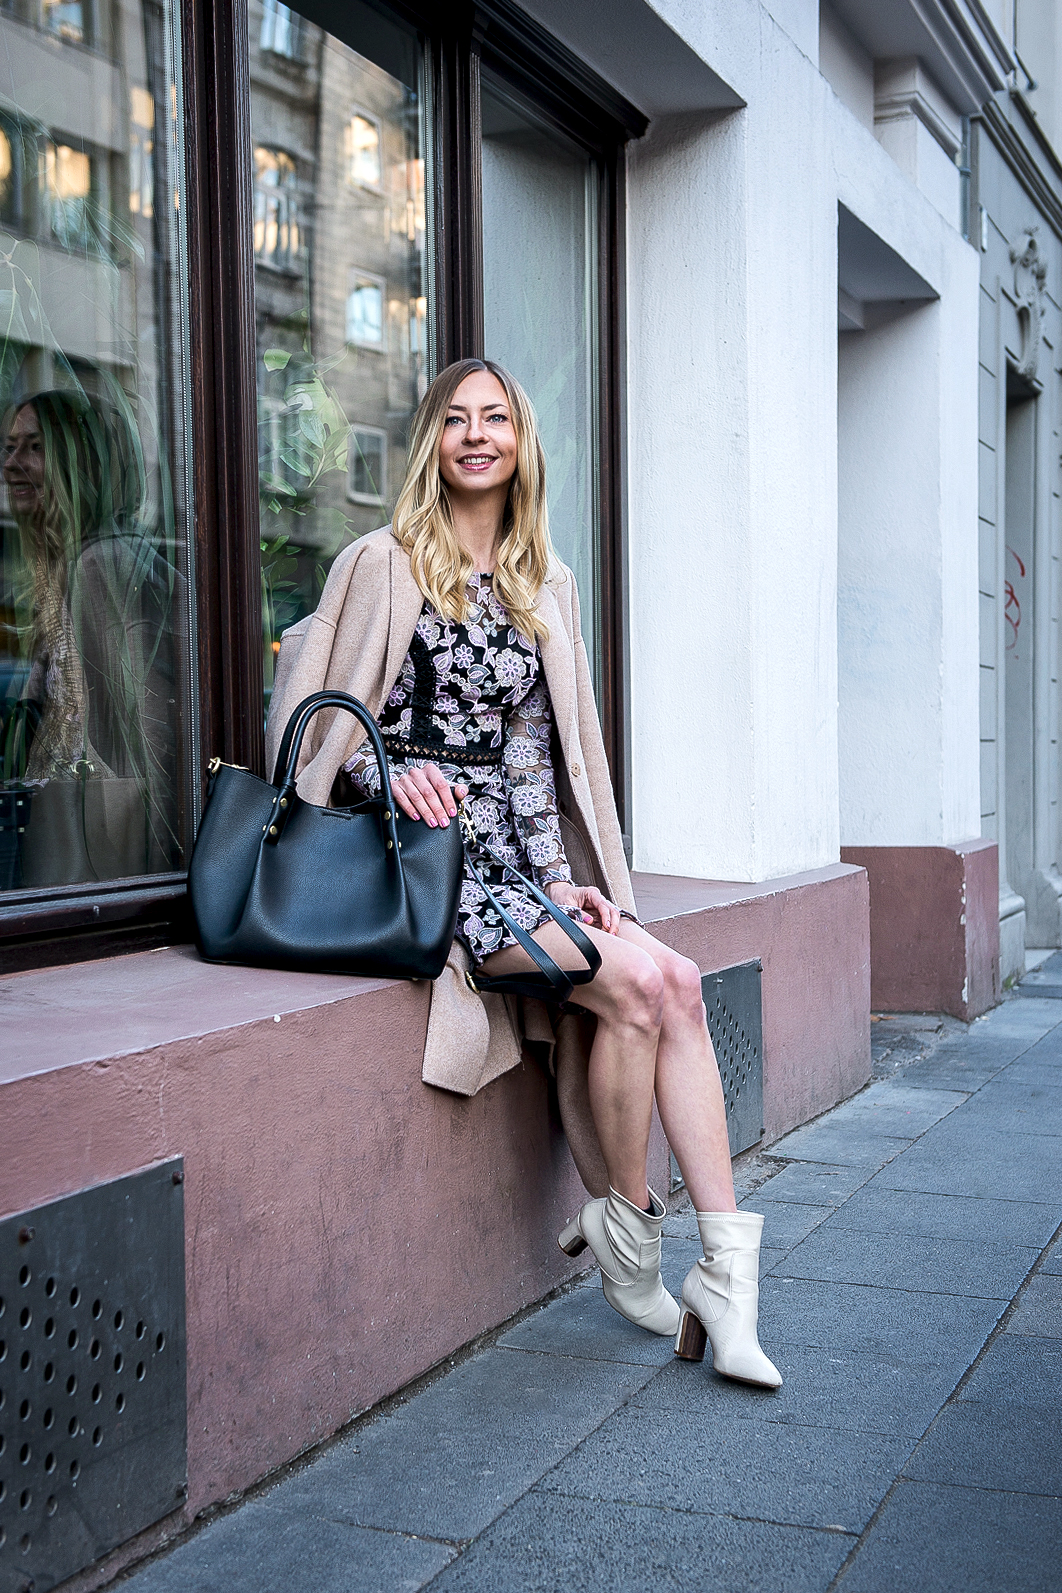 New Year - New Me with House of Envy | How I met my outfit by Dana Lohmüller | photos: Thomas Rauhut